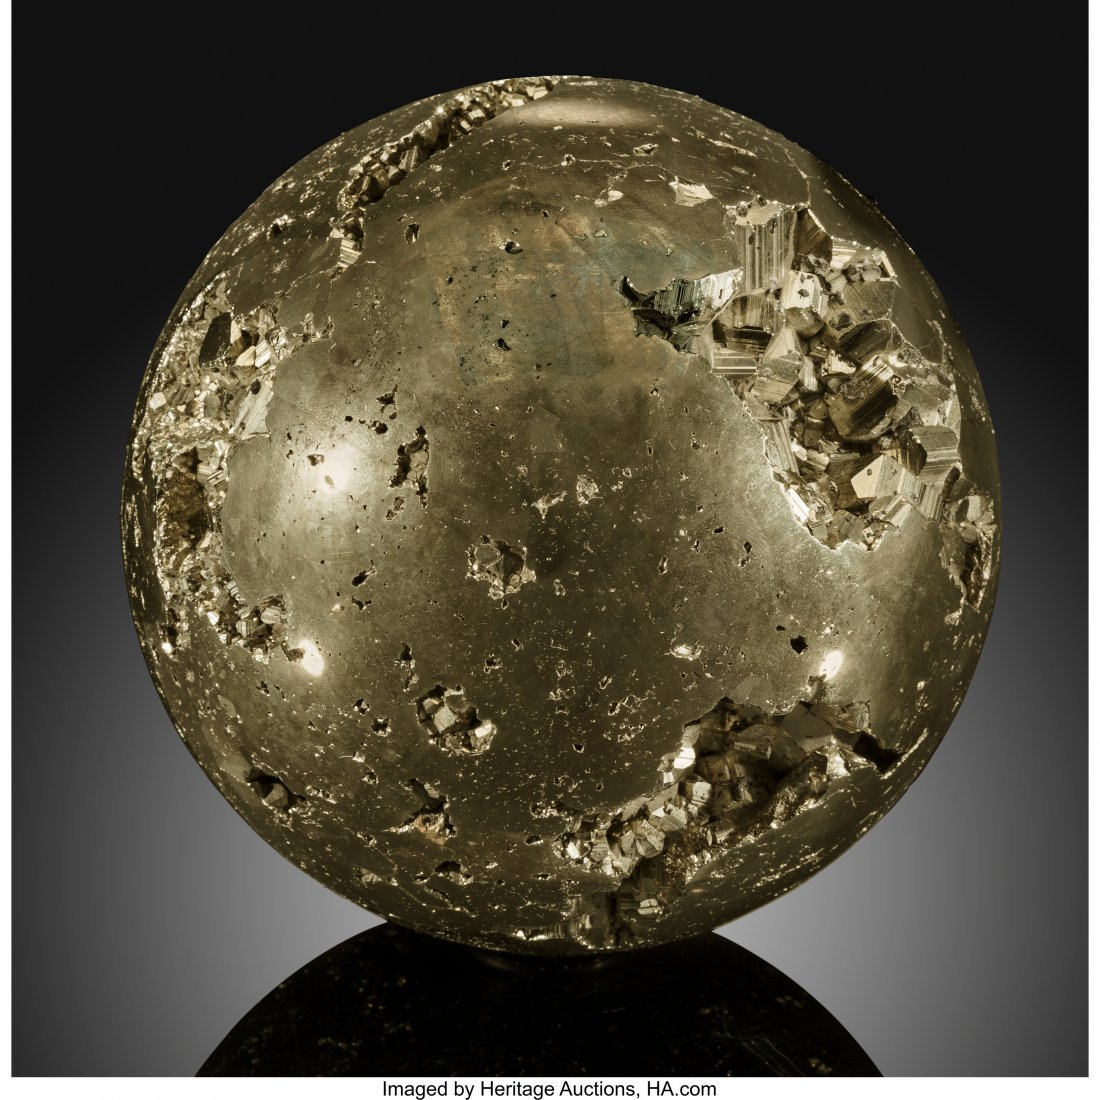 72048: Pyrite Sphere Stone Source: Peru   Pyrite, often